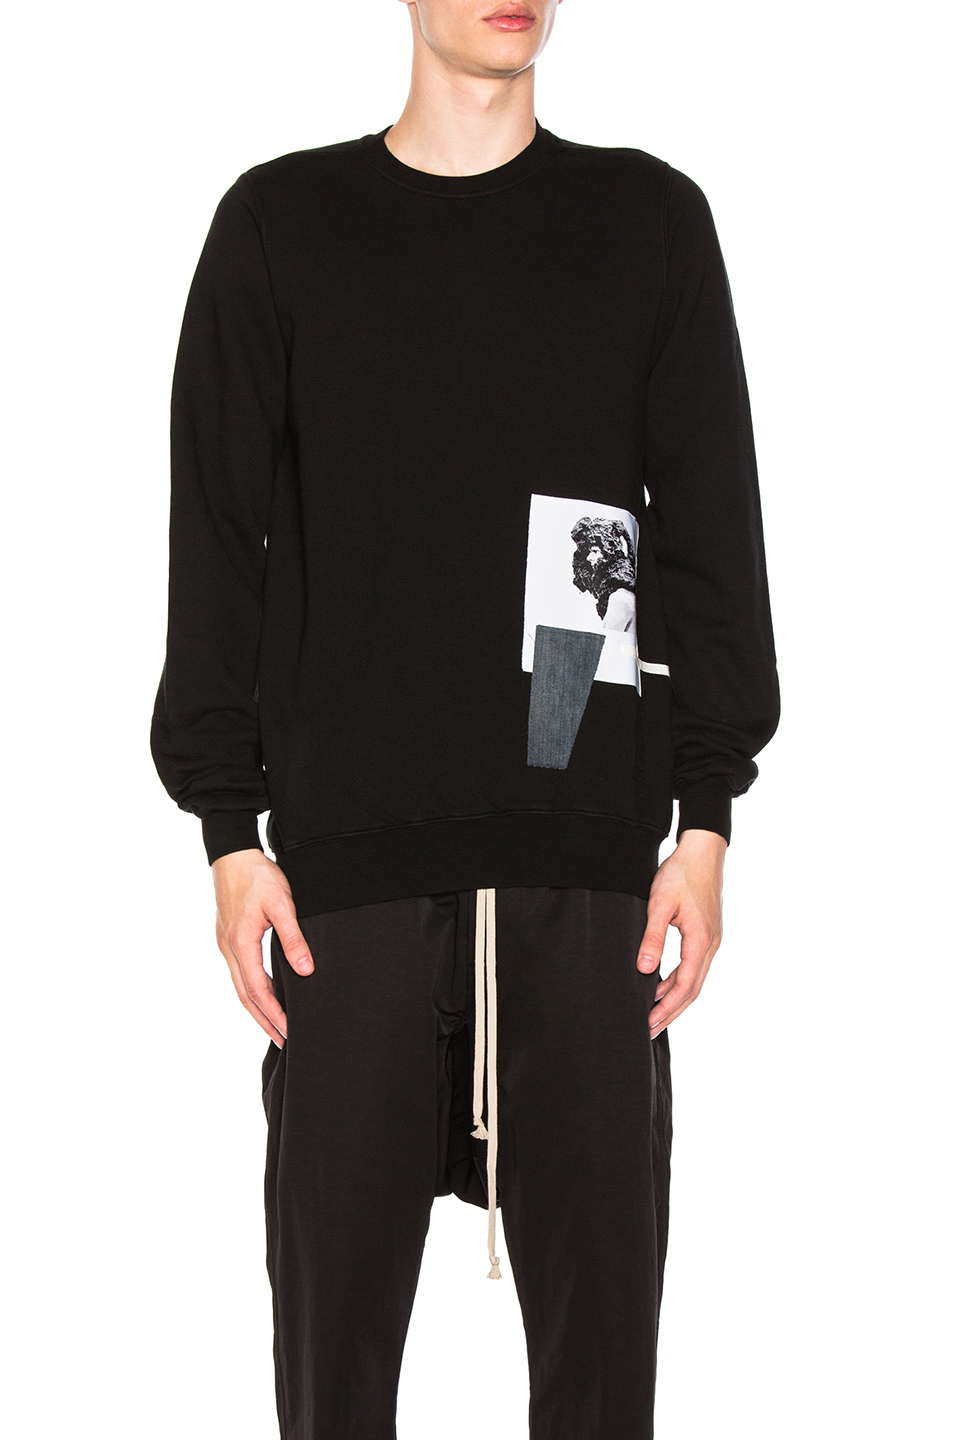 DRKSHDW by Rick Owens Crewneck Sweatshirt in Black